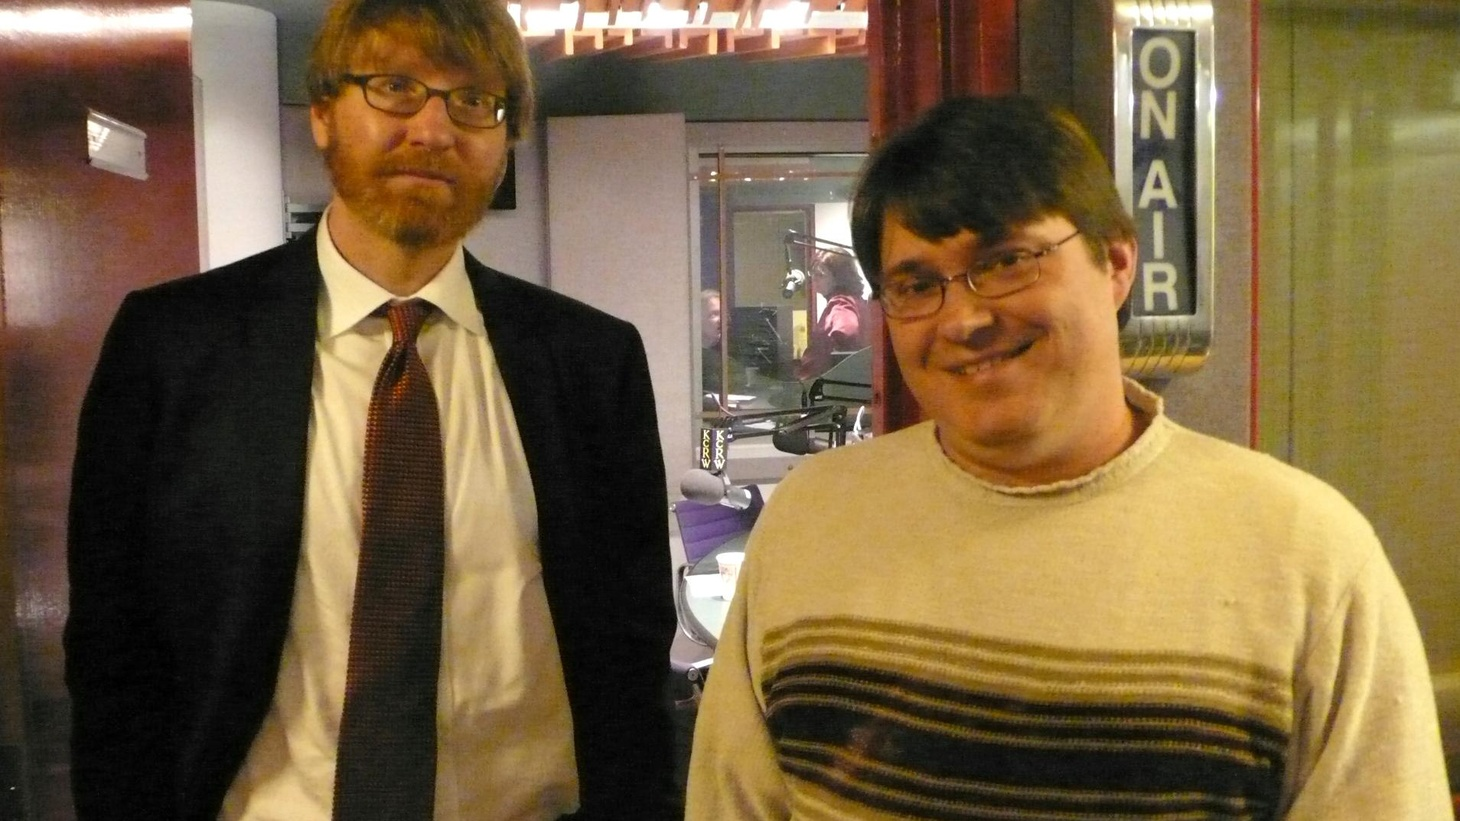 Author and cultural commentator Chuck Klosterman was insightful and thought provoking in his selection of songs with both personal and cultural relevance. He shares the track that opened his eyes to the vast musical universe beyond metal - his favorite genre as a teen - as well as gems from Akron, Ohio's most popular band and a Brit-pop favorite.